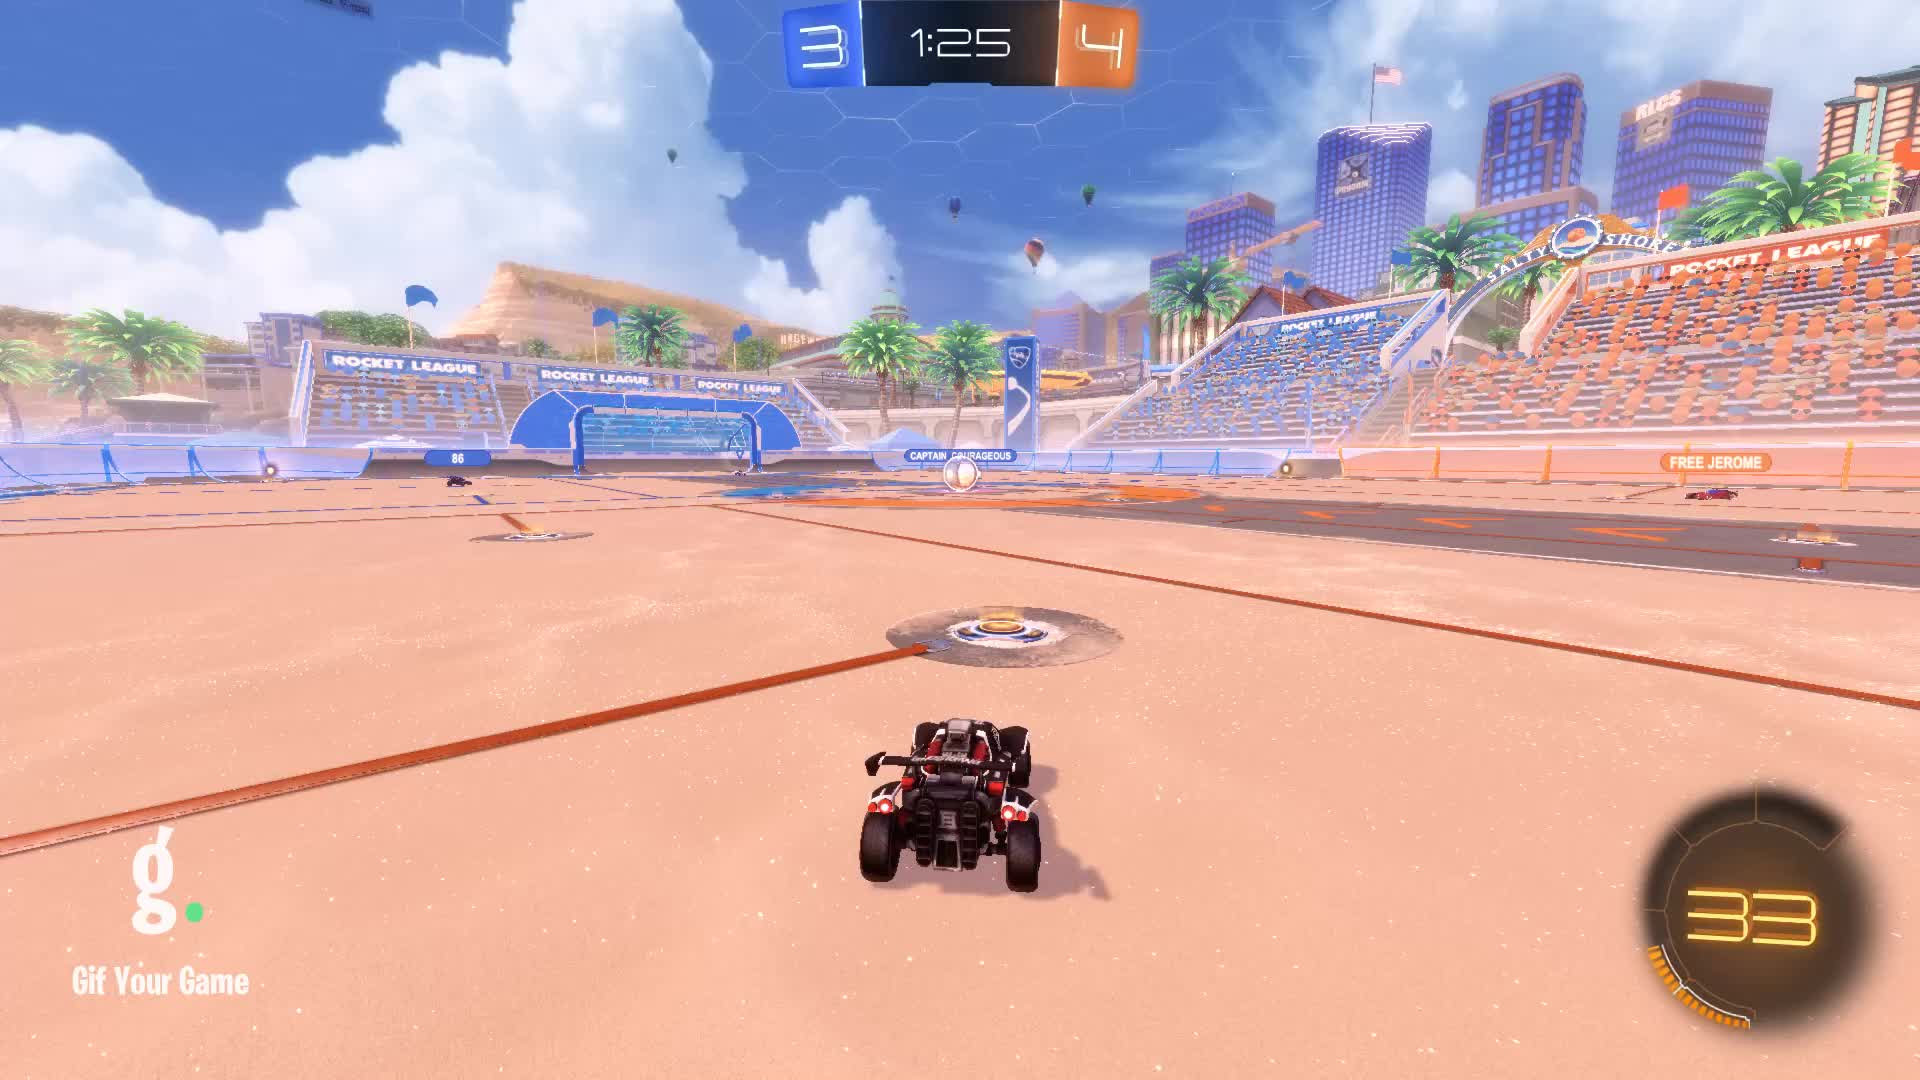 Gif Your Game, GifYourGame, Goal, M15, Rocket League, RocketLeague, Goal 8: M15 GIFs